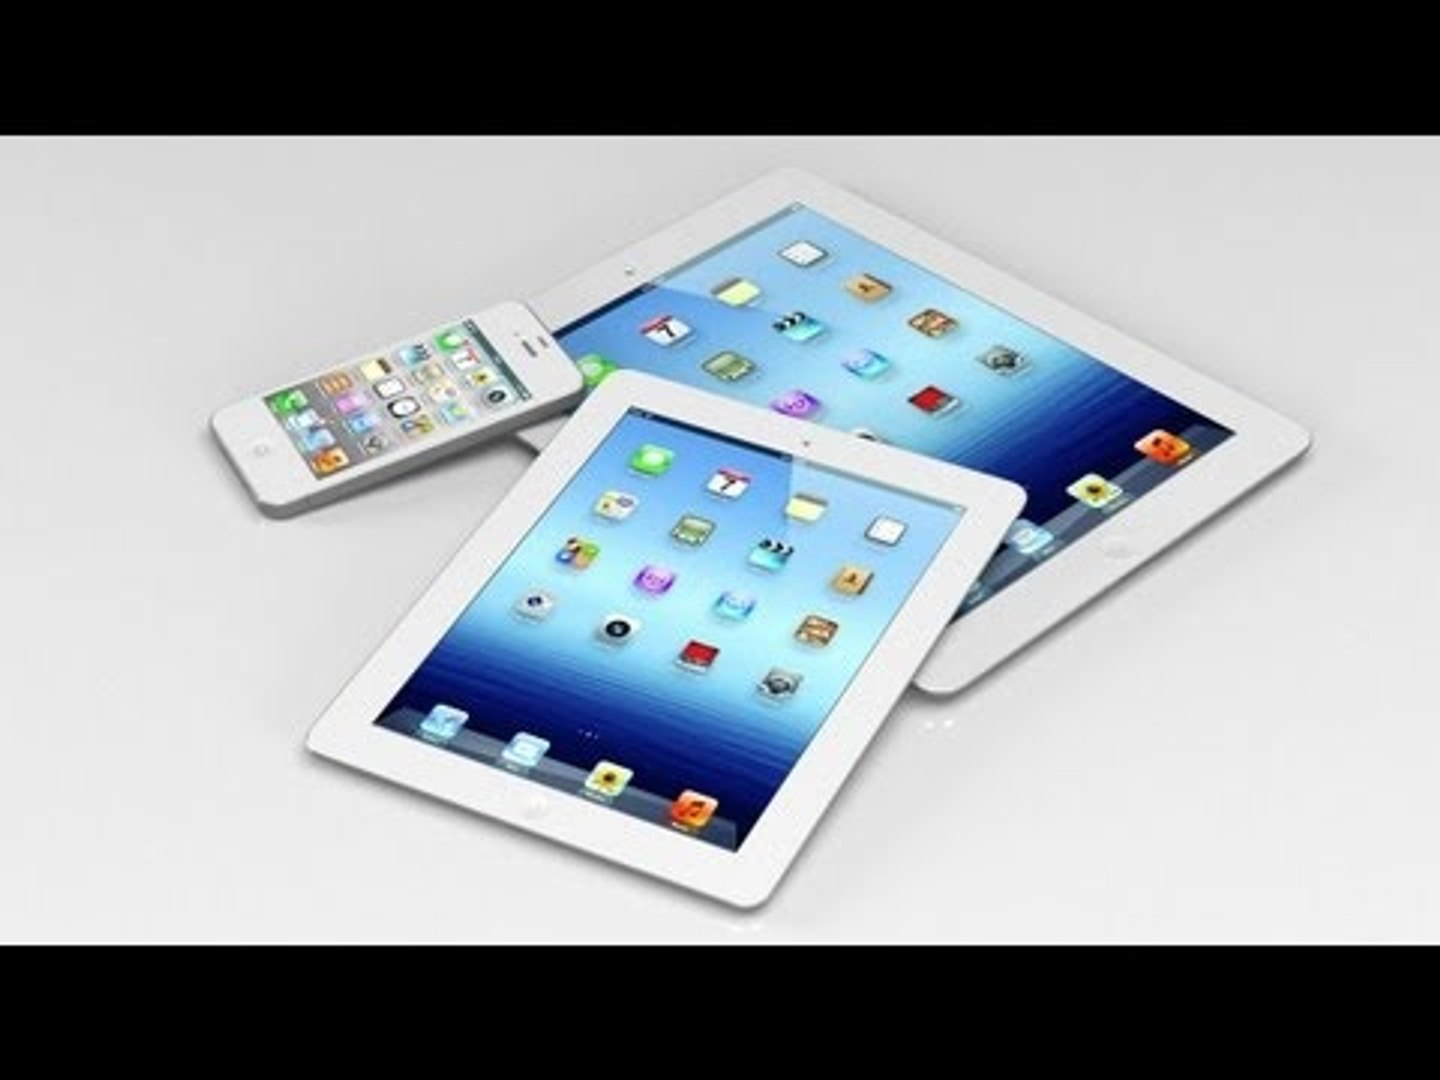 The iPad Mini, The Best Android Tablet and More!